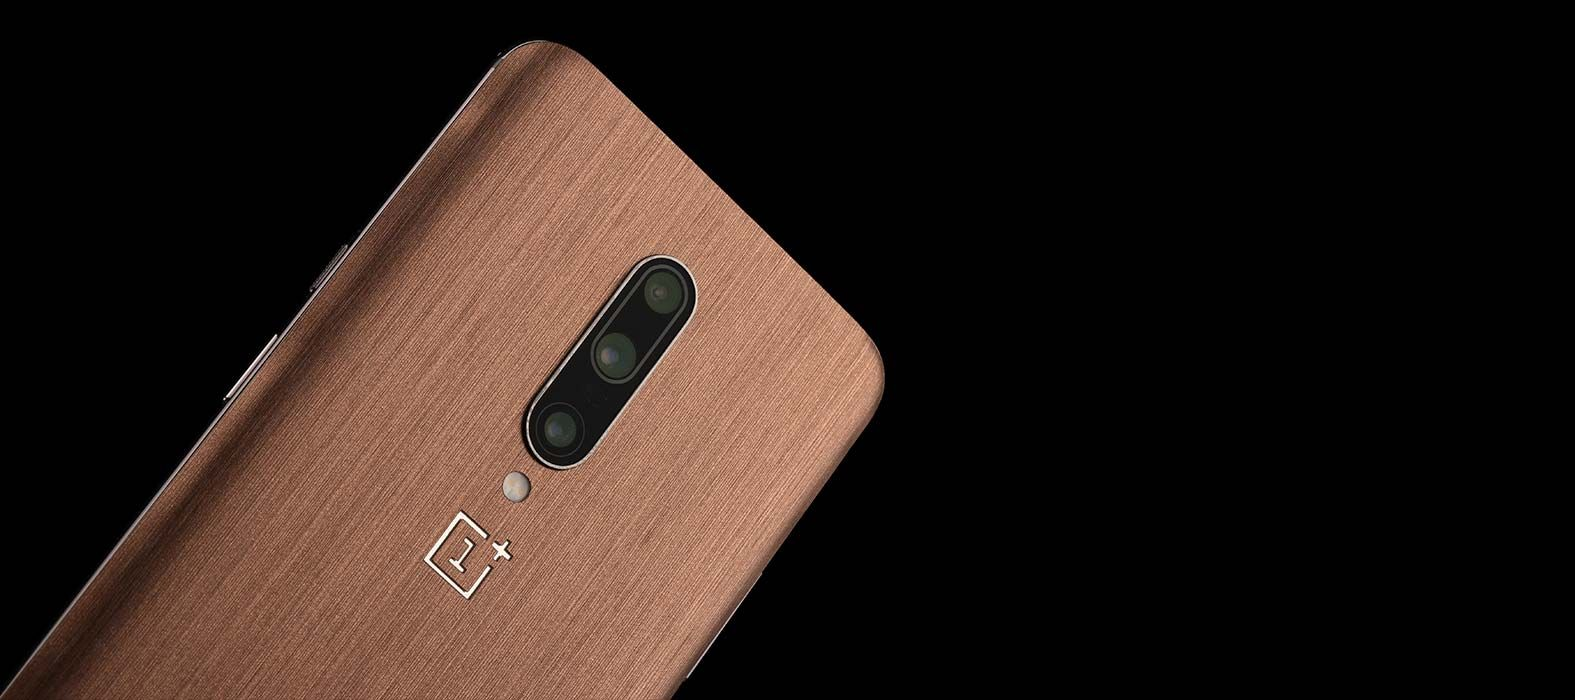 Oneplus-7-Pro-Brushed-Copper-Skins